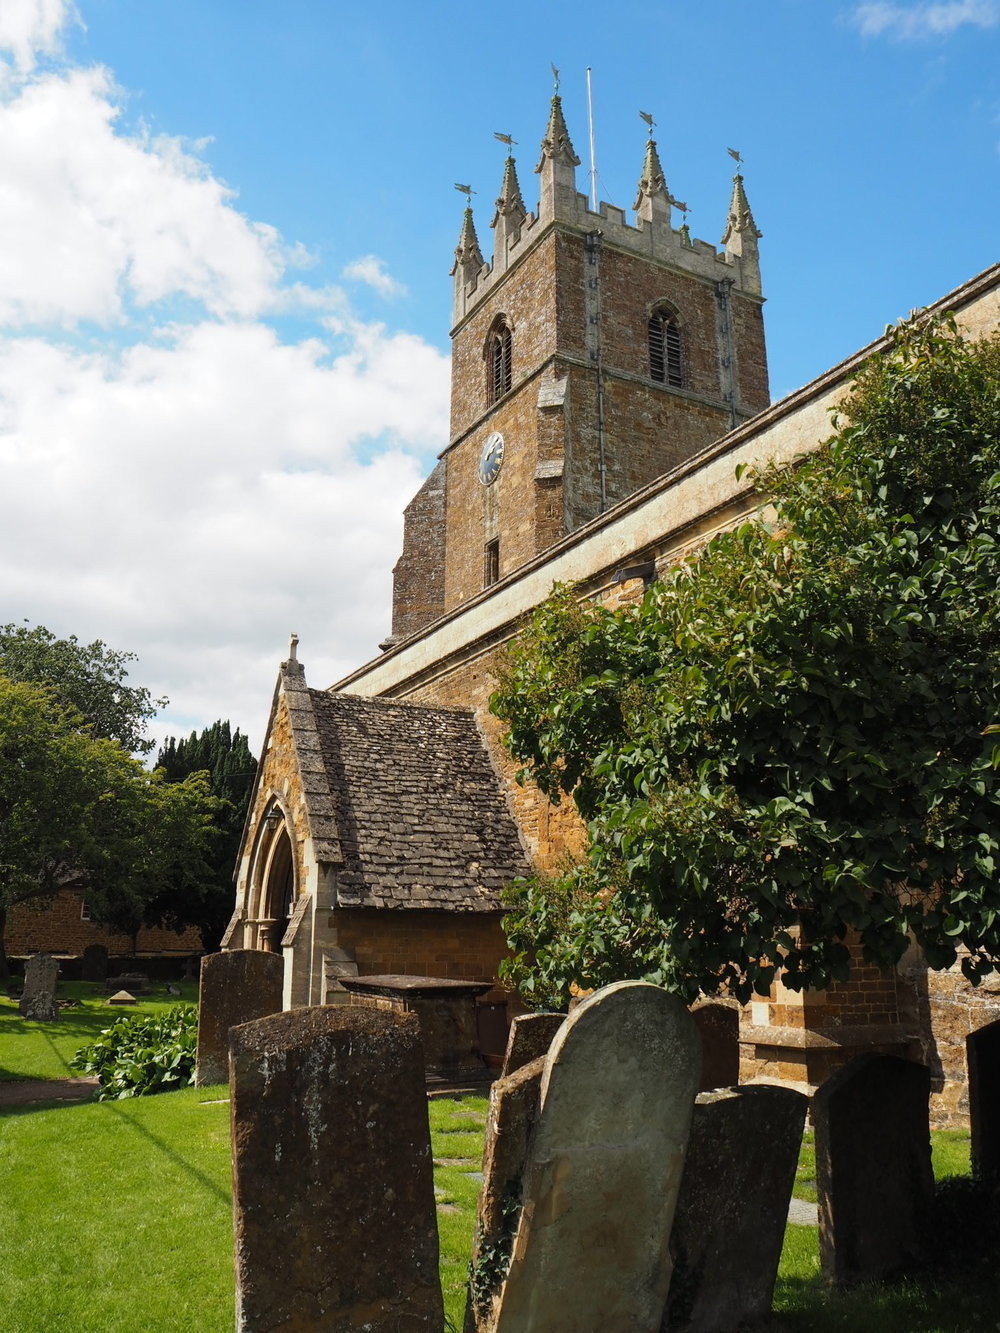 S.S. Peter and Paul Parish Church in Deddington.